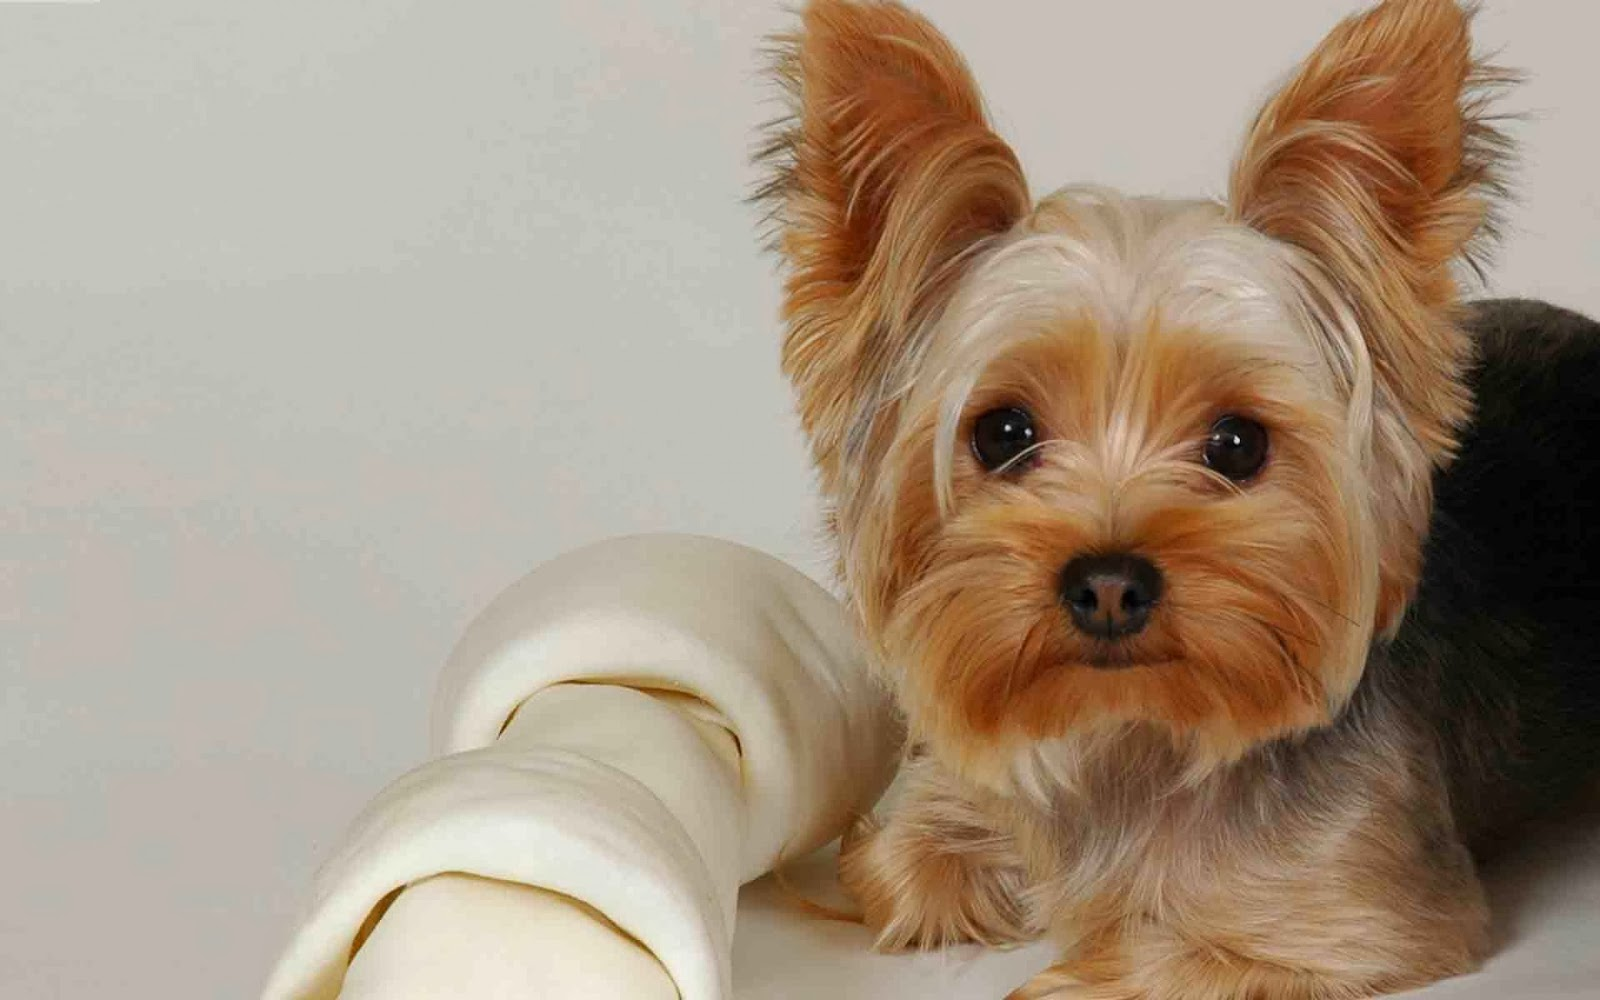 Top 10 Dog Breeds in the World |The Cozy Pet Blog